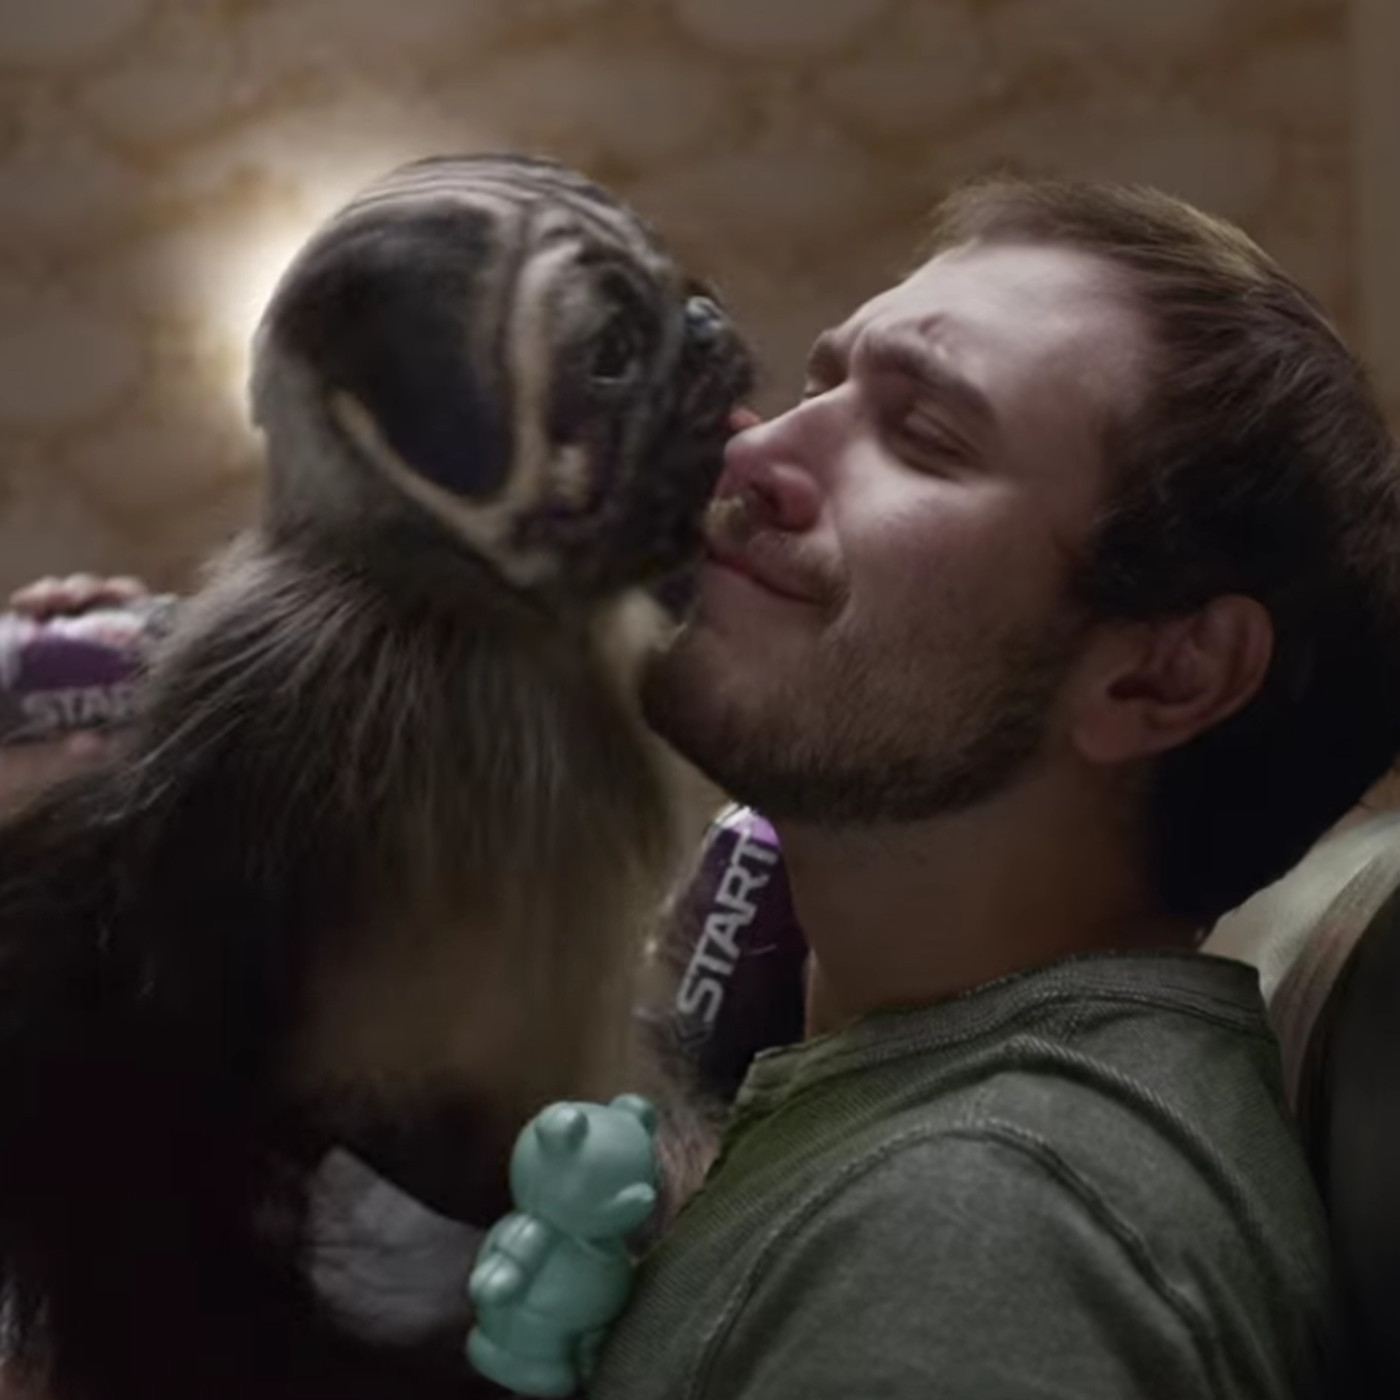 Best And Worst Super Bowl Ads 2020 Super Bowl commercials 2016: the 9 best and 5 worst ads   Vox